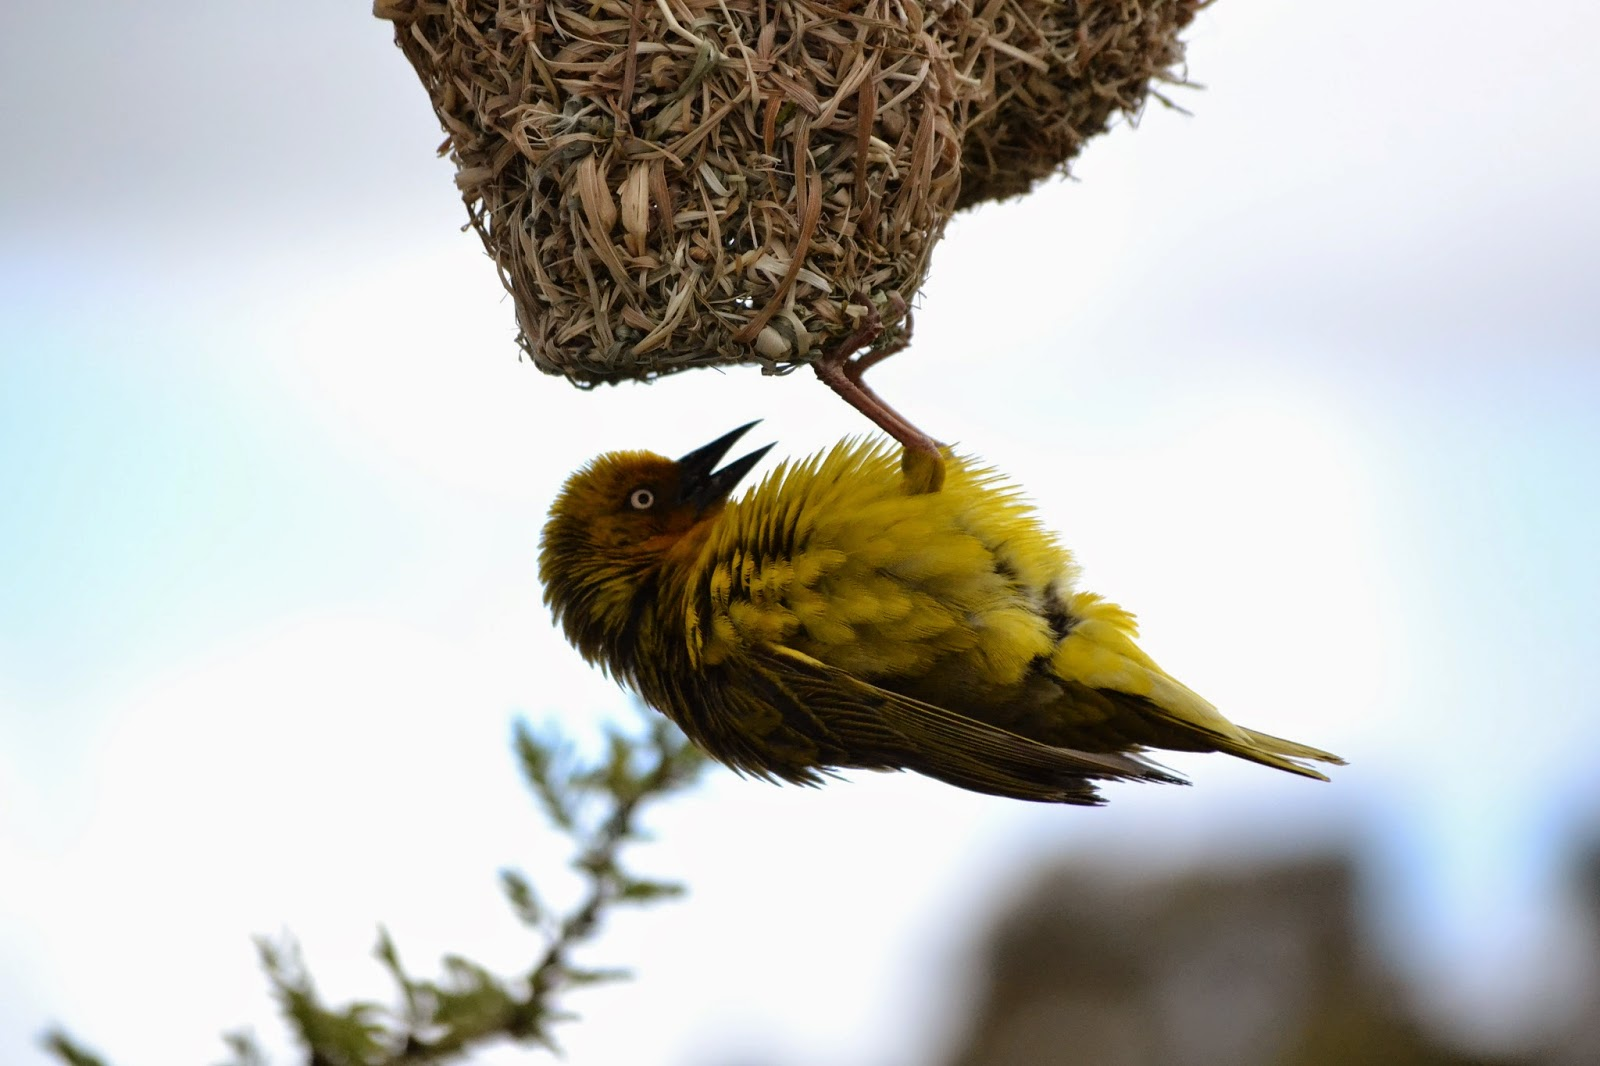 Cape Weaver on edge of nest